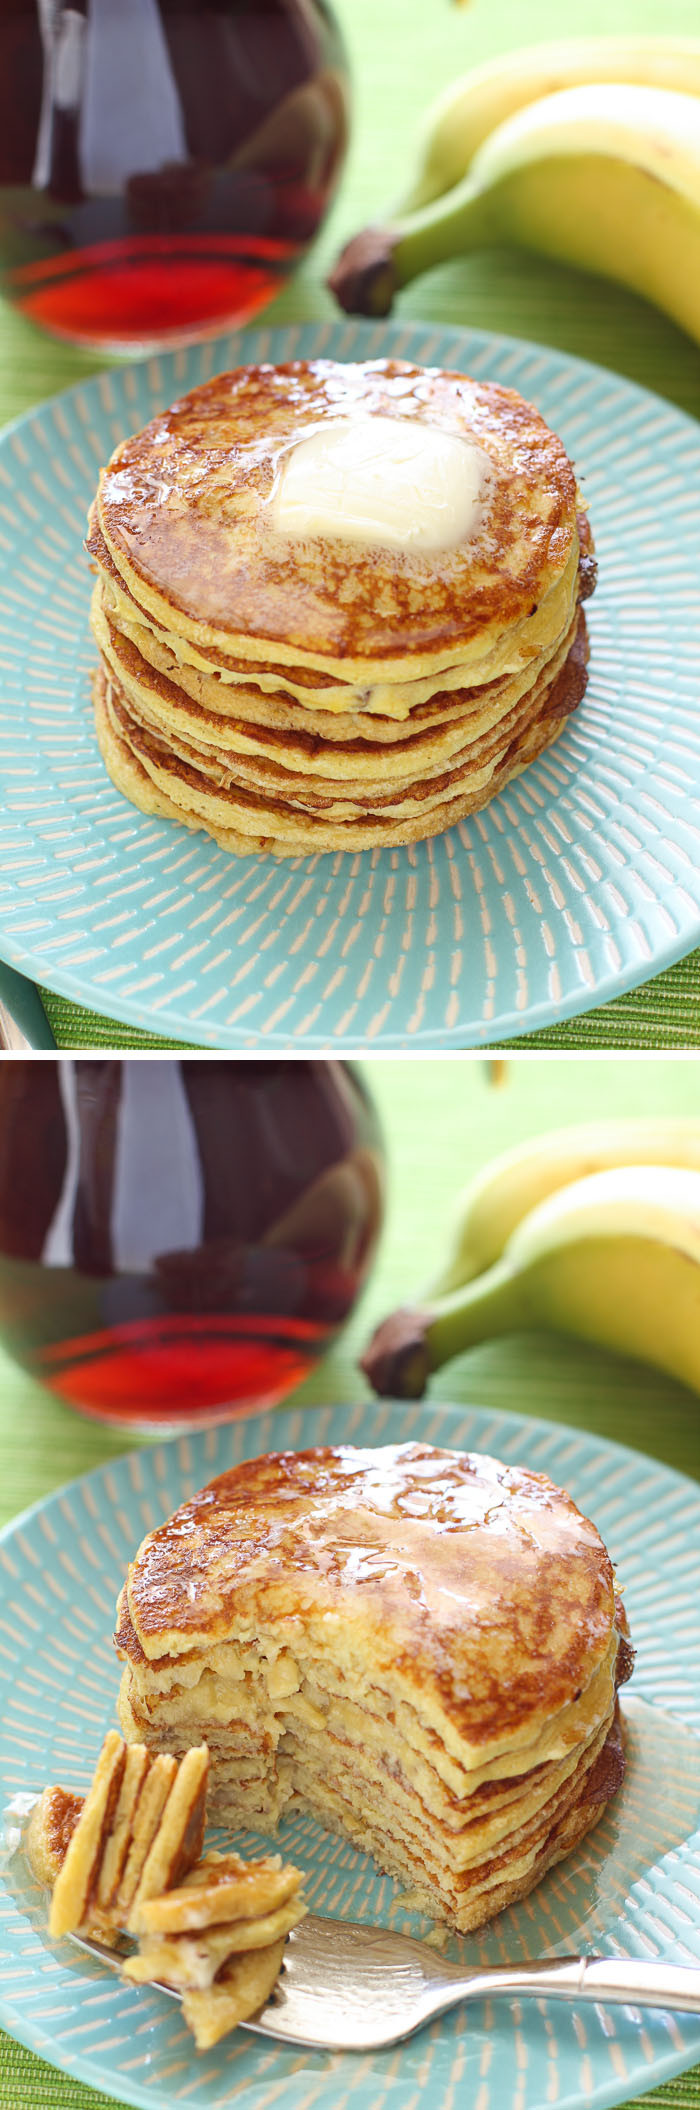 Protein Pancakes Recipe  Four Ingre nt Protein Pancakes and 16 other simple